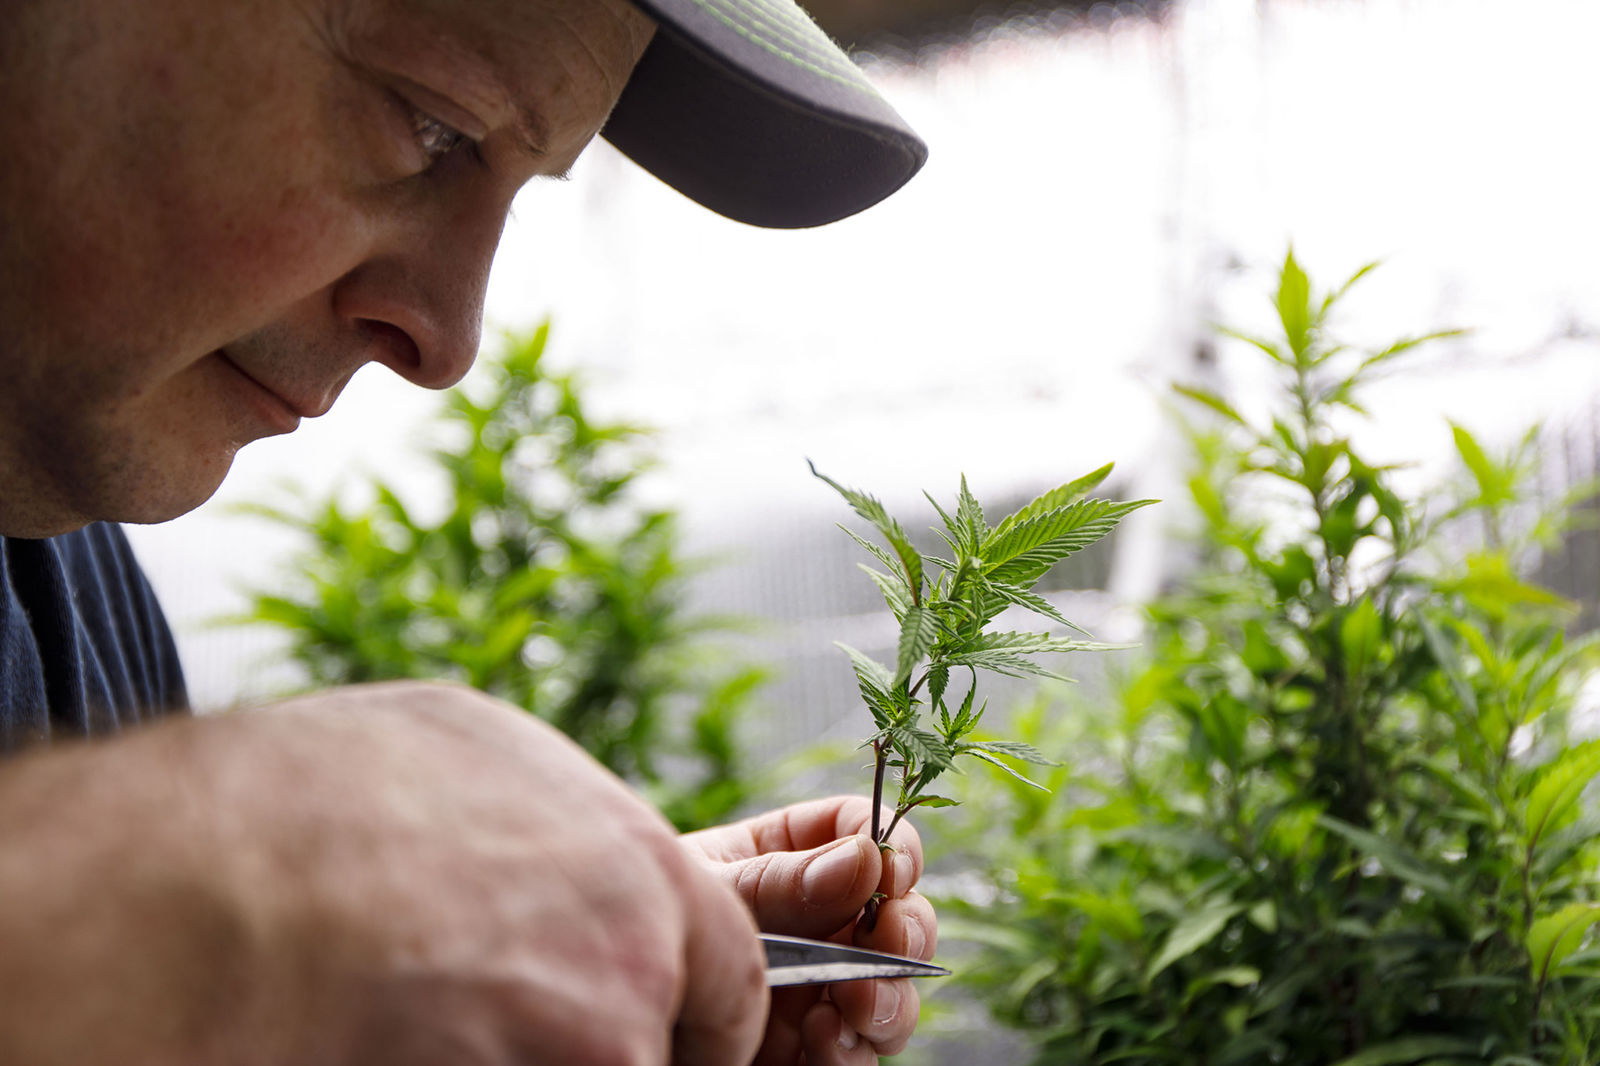 States turn to unenforced federal law to slow medical marijuana legalization